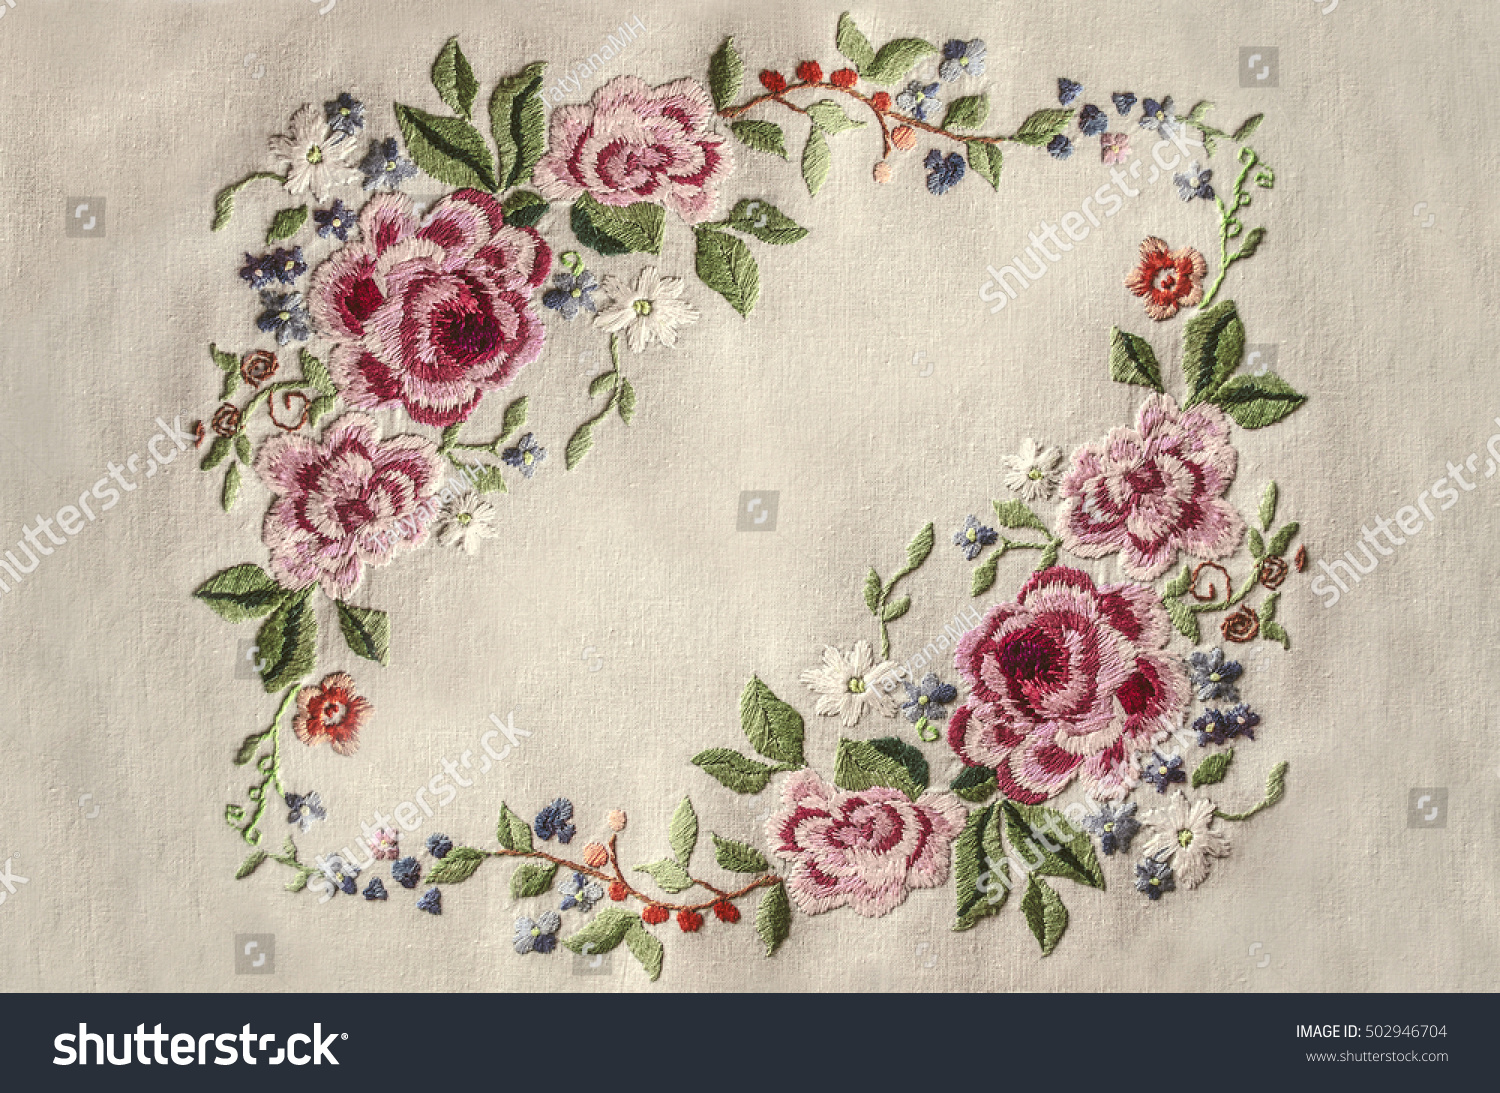 Frame of embroidery pink roses with other flowers and